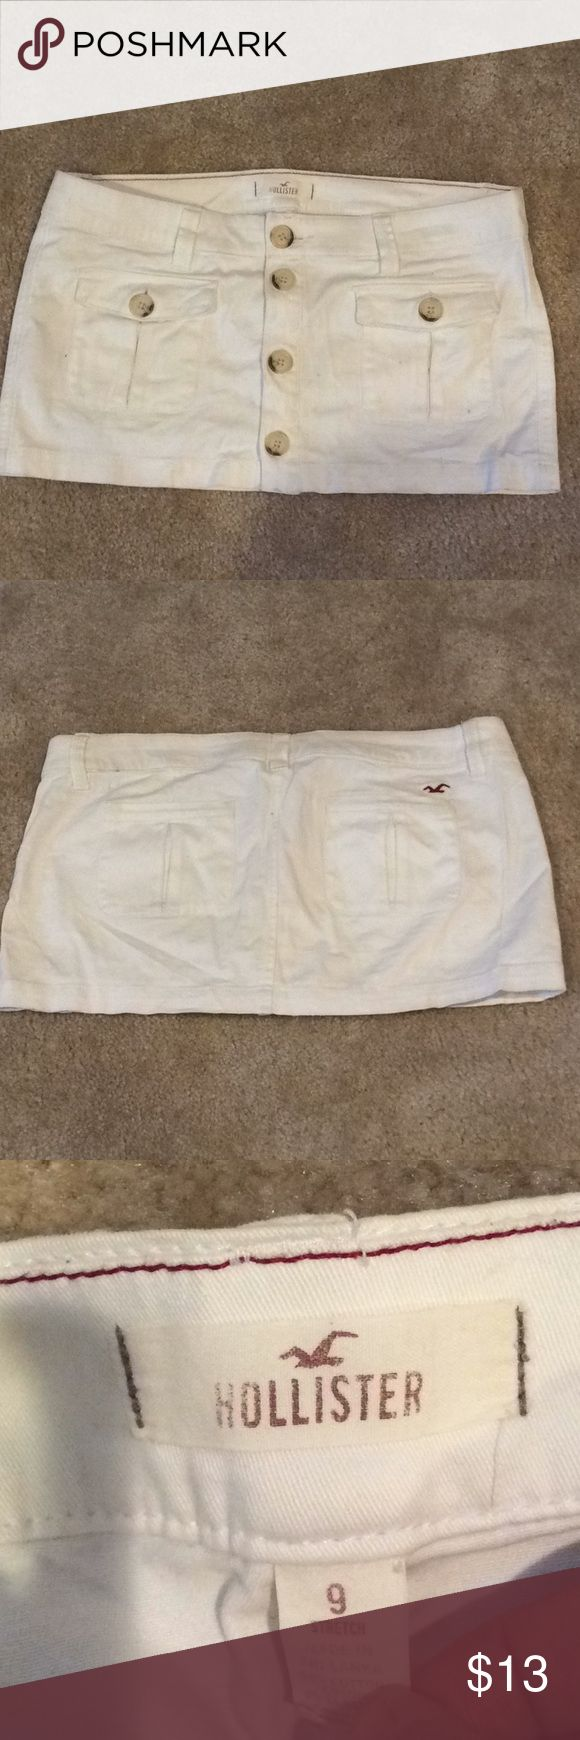 Hollister skirt White stretchy Hollister skirt. Has a cute set of 4 buttons going up it, and 2 on the pockets. Hollister Skirts Mini